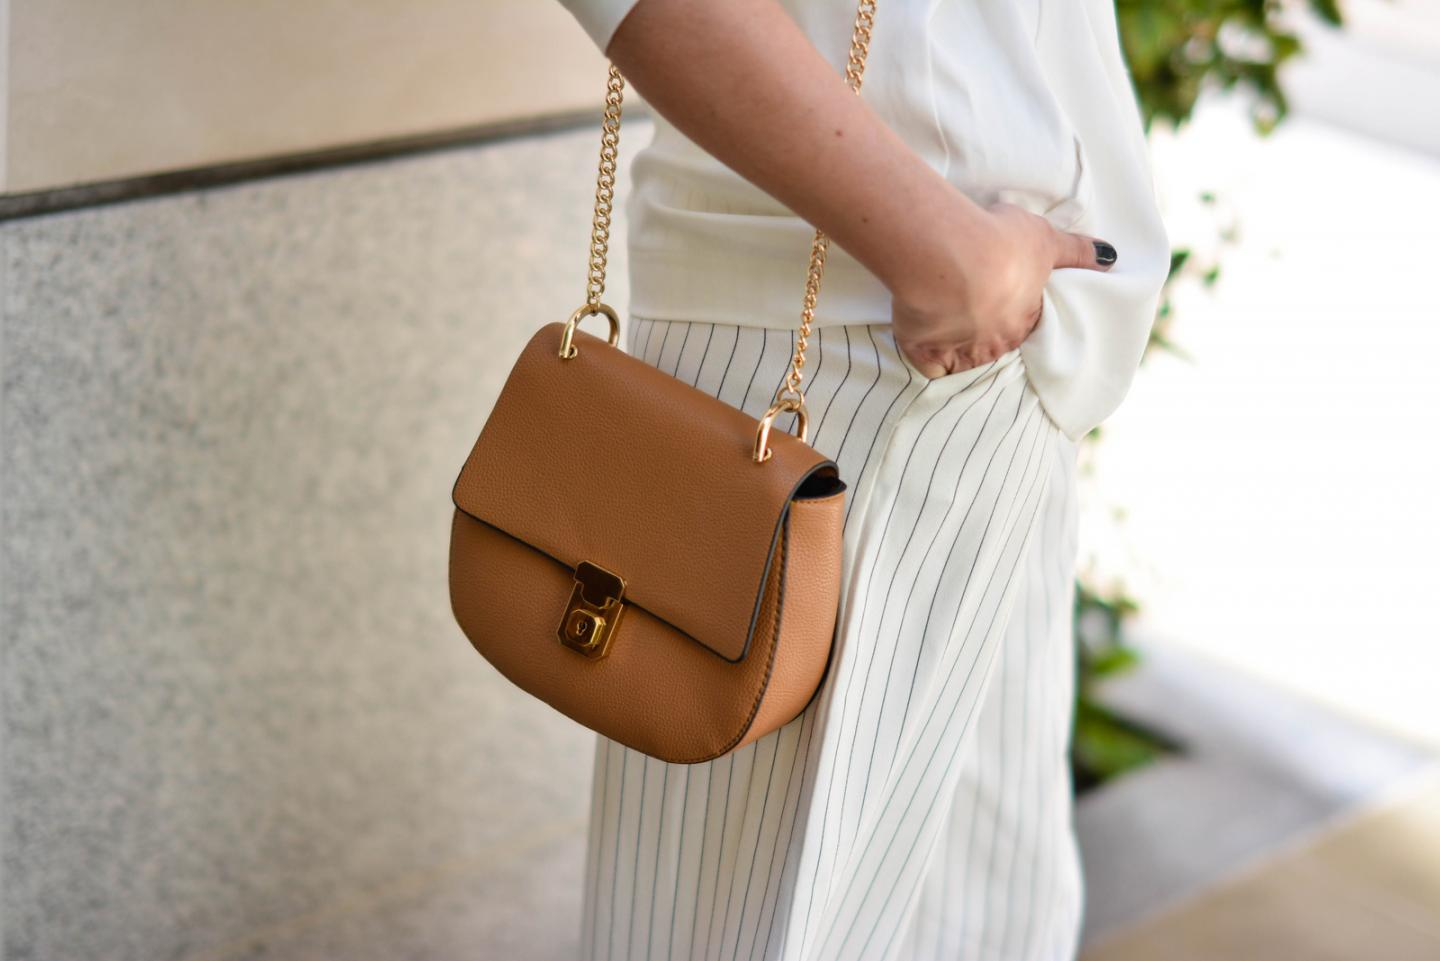 EJSTYLE - Emma Hill wearing Gestuz white wrap jacket, Finders Keepers white pinstripe culottes, tan Chloe drew dupe inspired bag